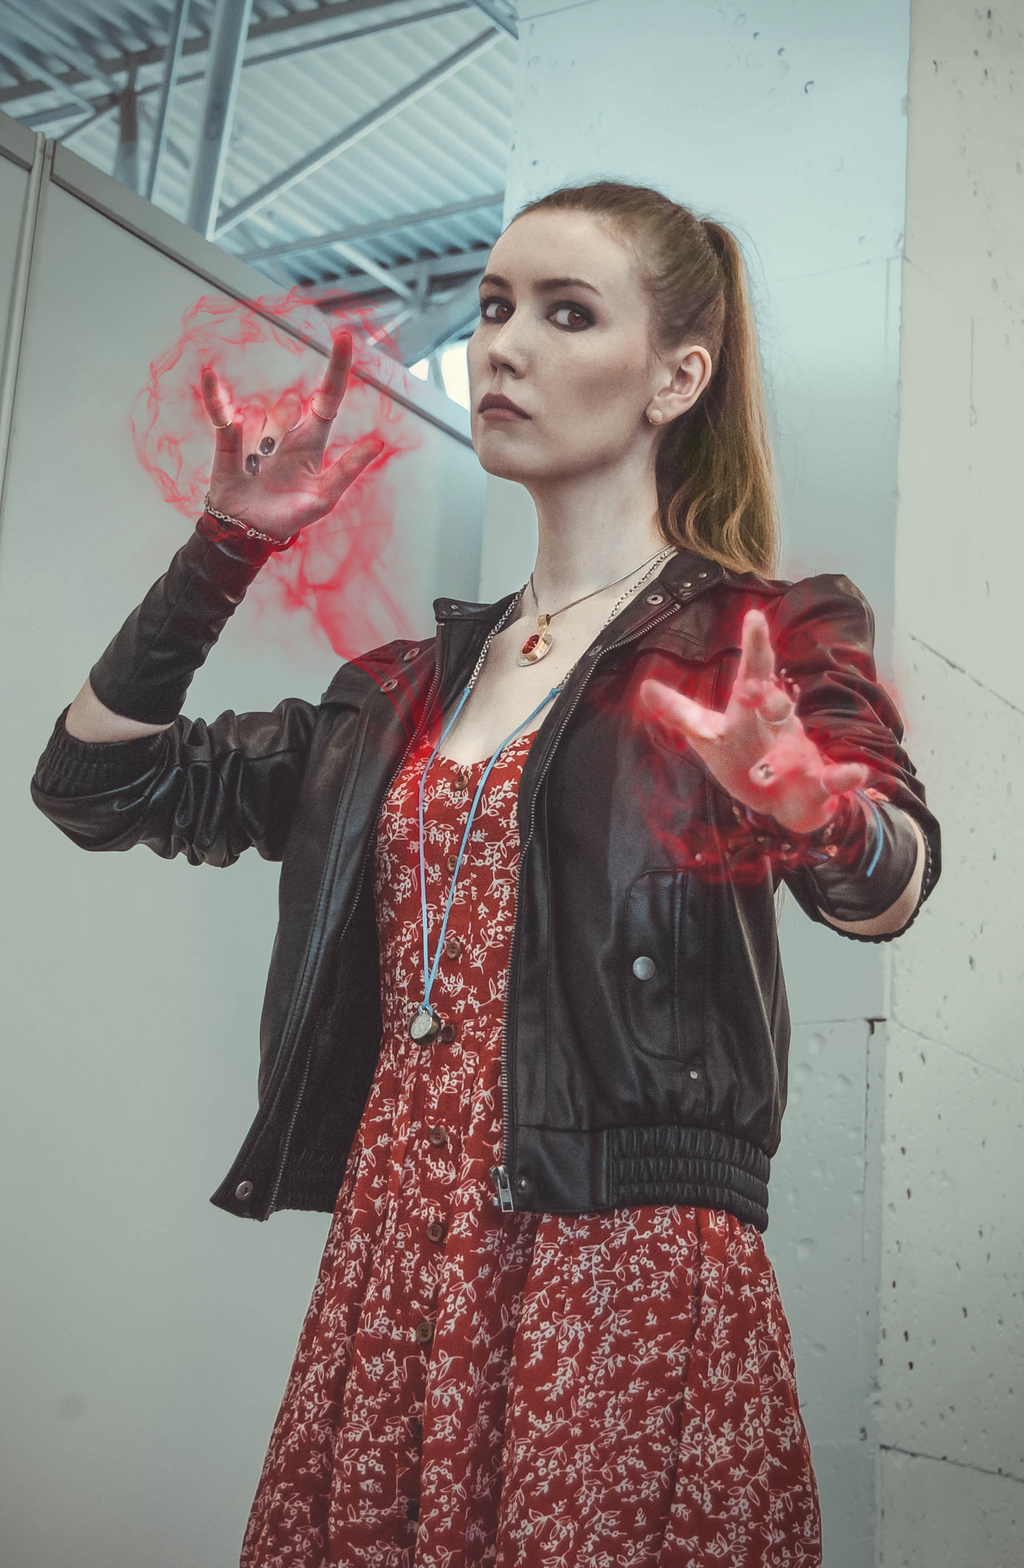 Scarlet Witch Avengers Age of Ultron by helenkyle on DeviantArt